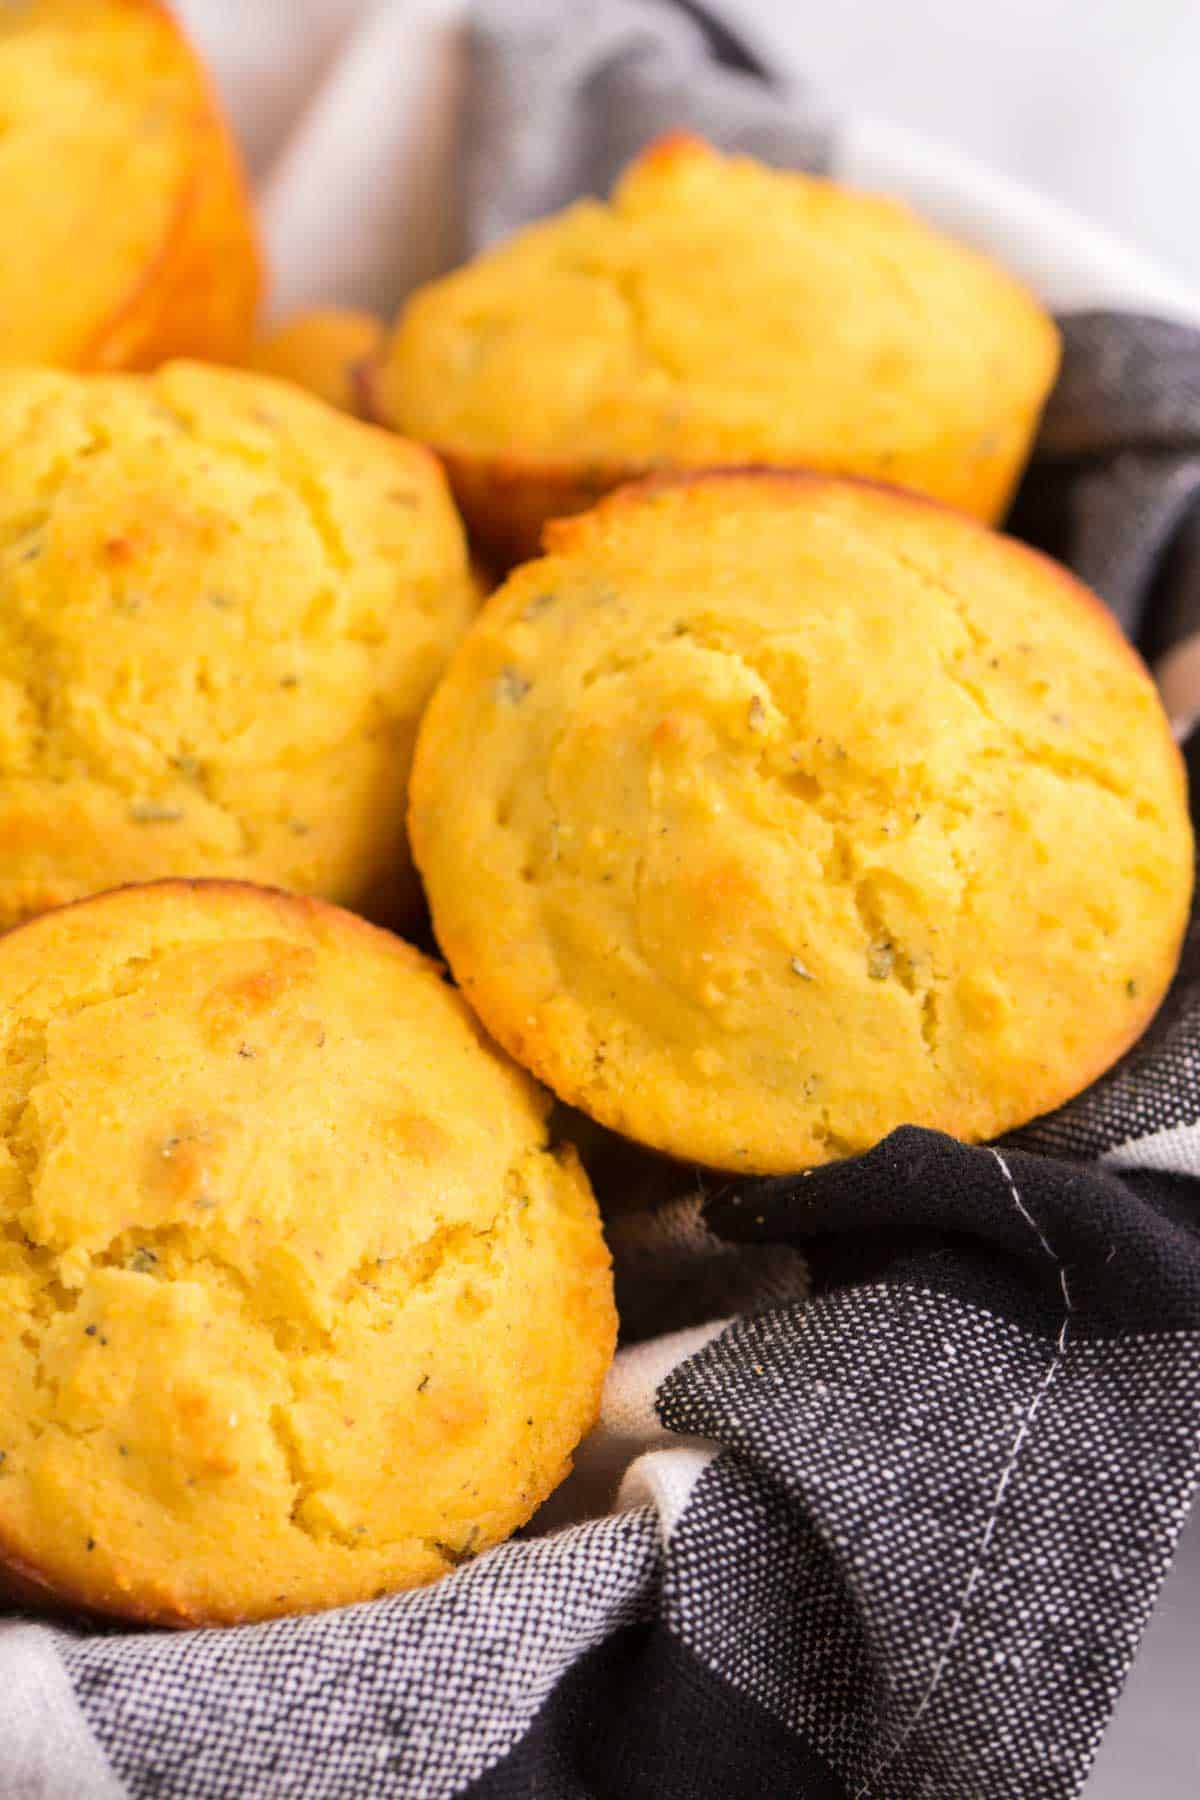 a pile of gluten free cornbread muffins in a basket lined with a black and white plaid napkin